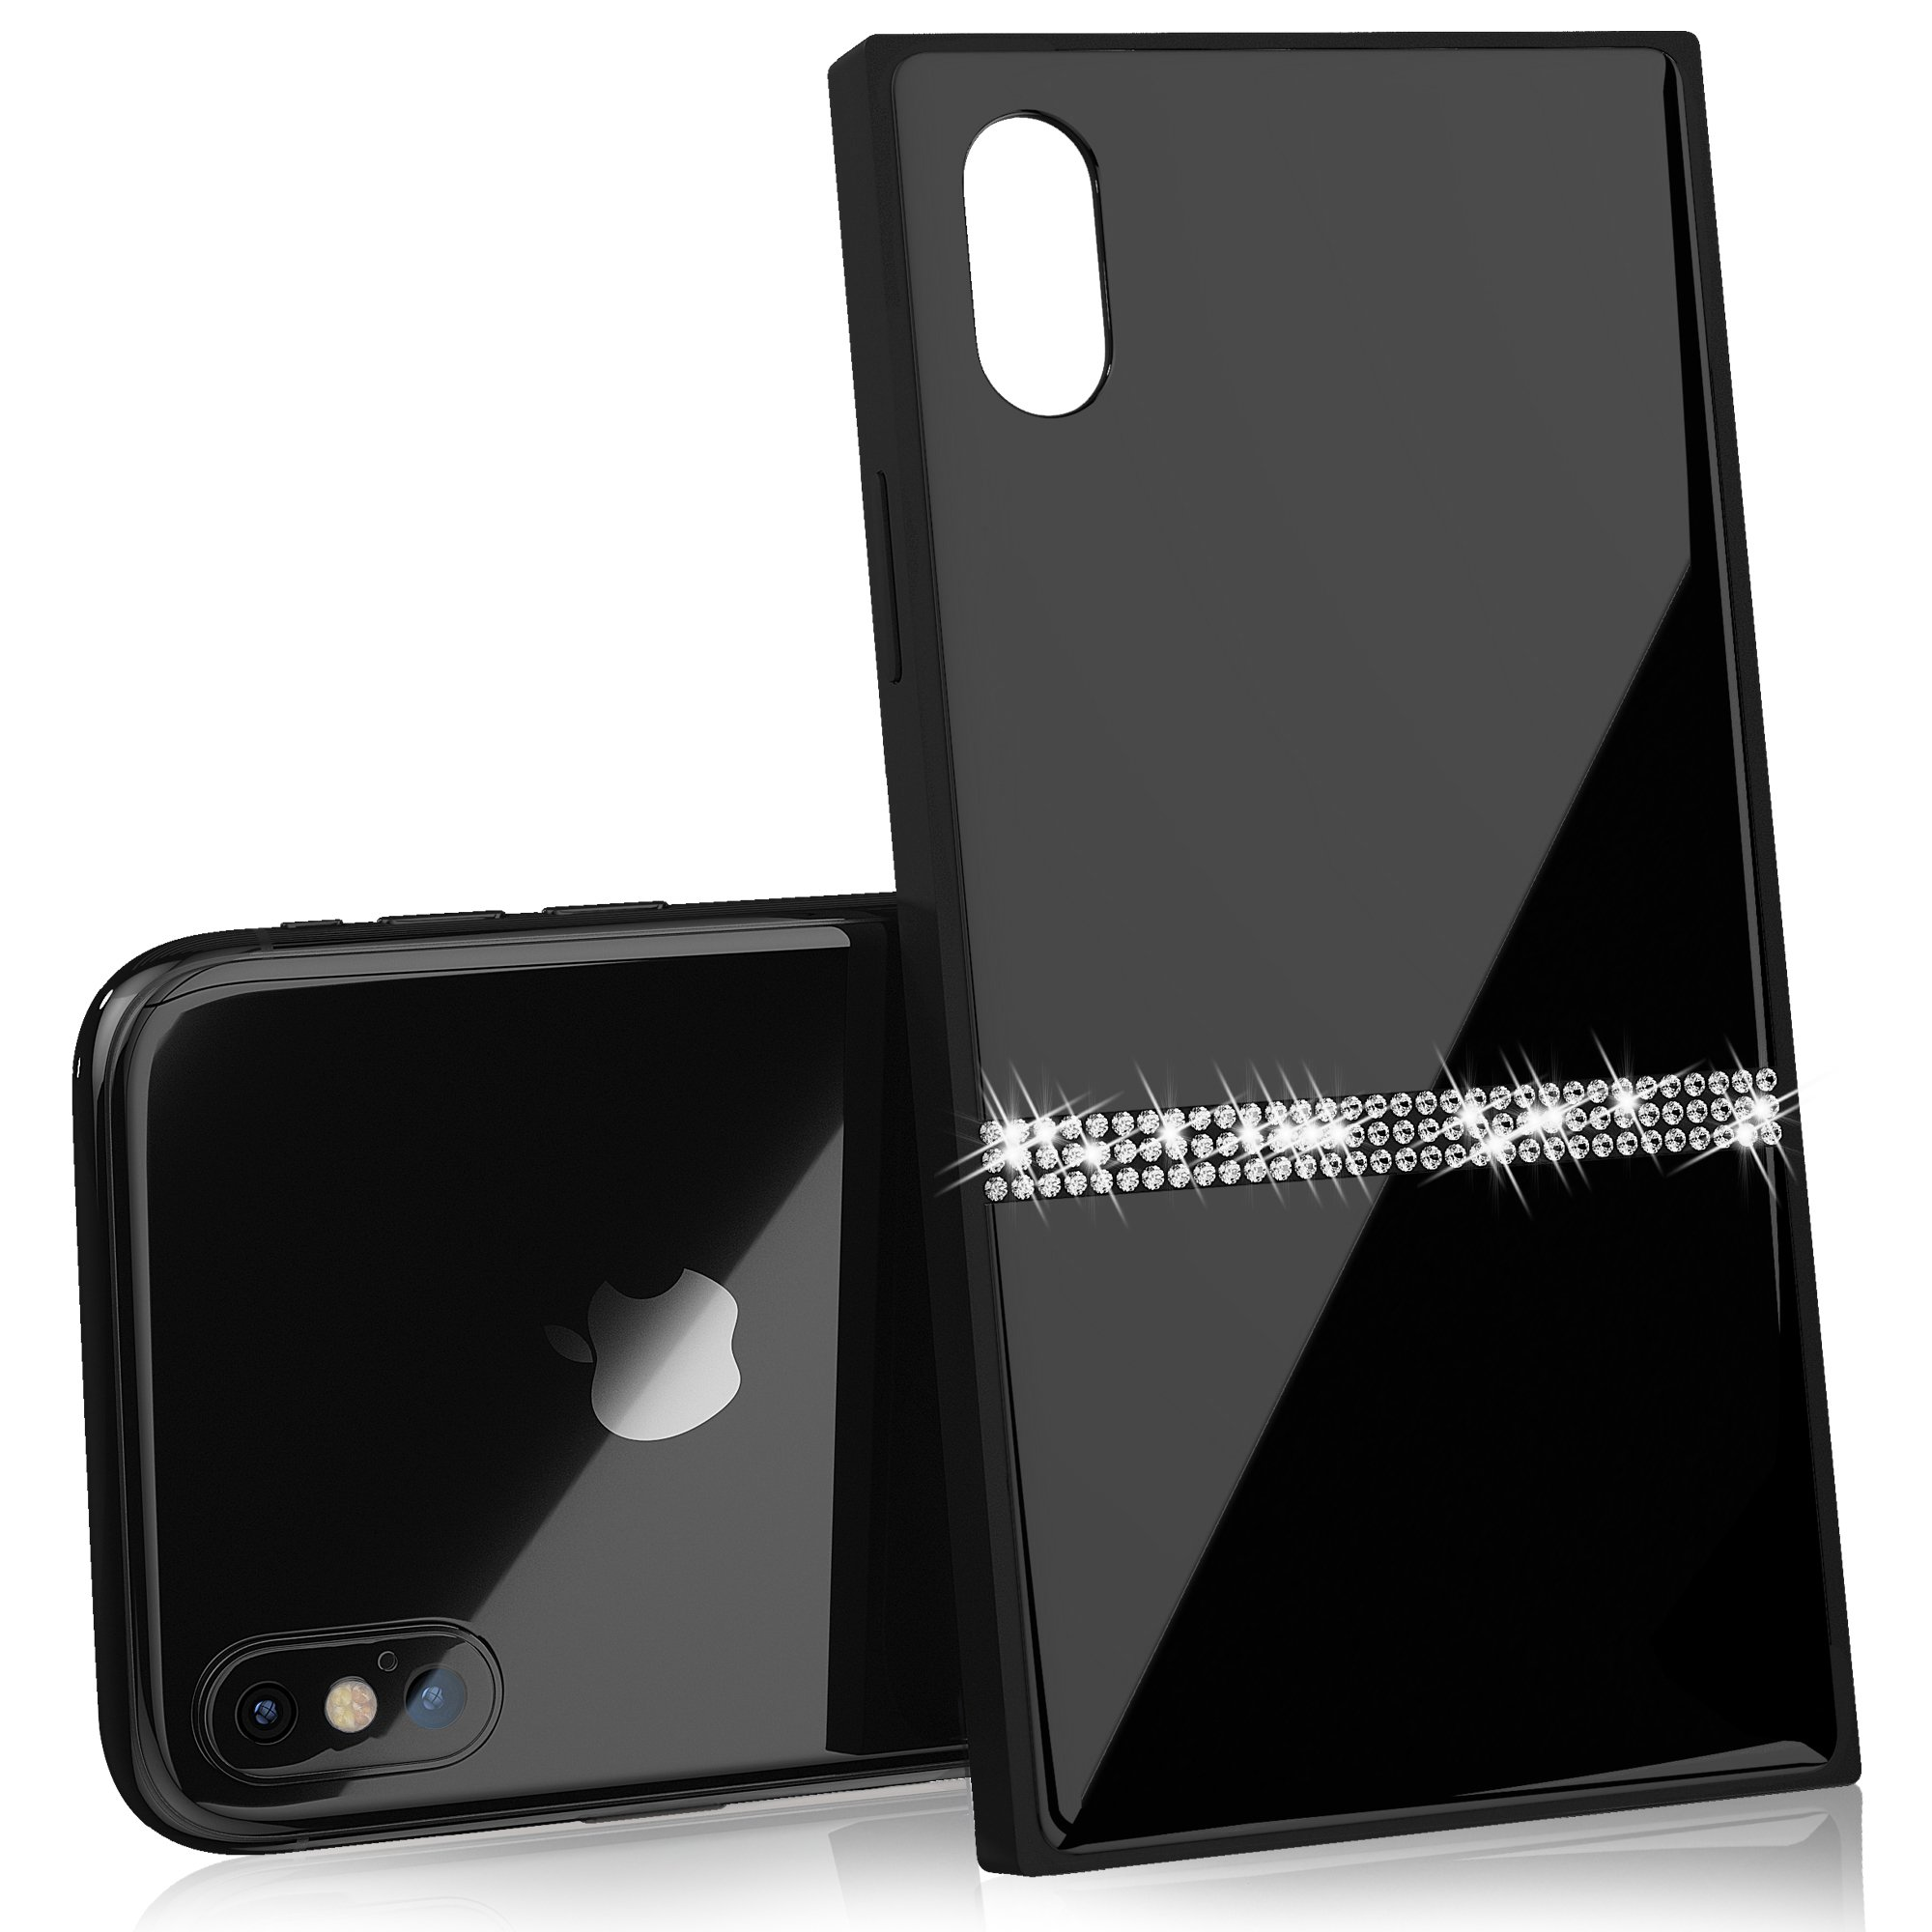 Luxury iPhone X Case with Rhinestones and 9H Tempered Glass, Drop Protection, Wireless Charging Compatible for Apple iPhone X (2017) - Black